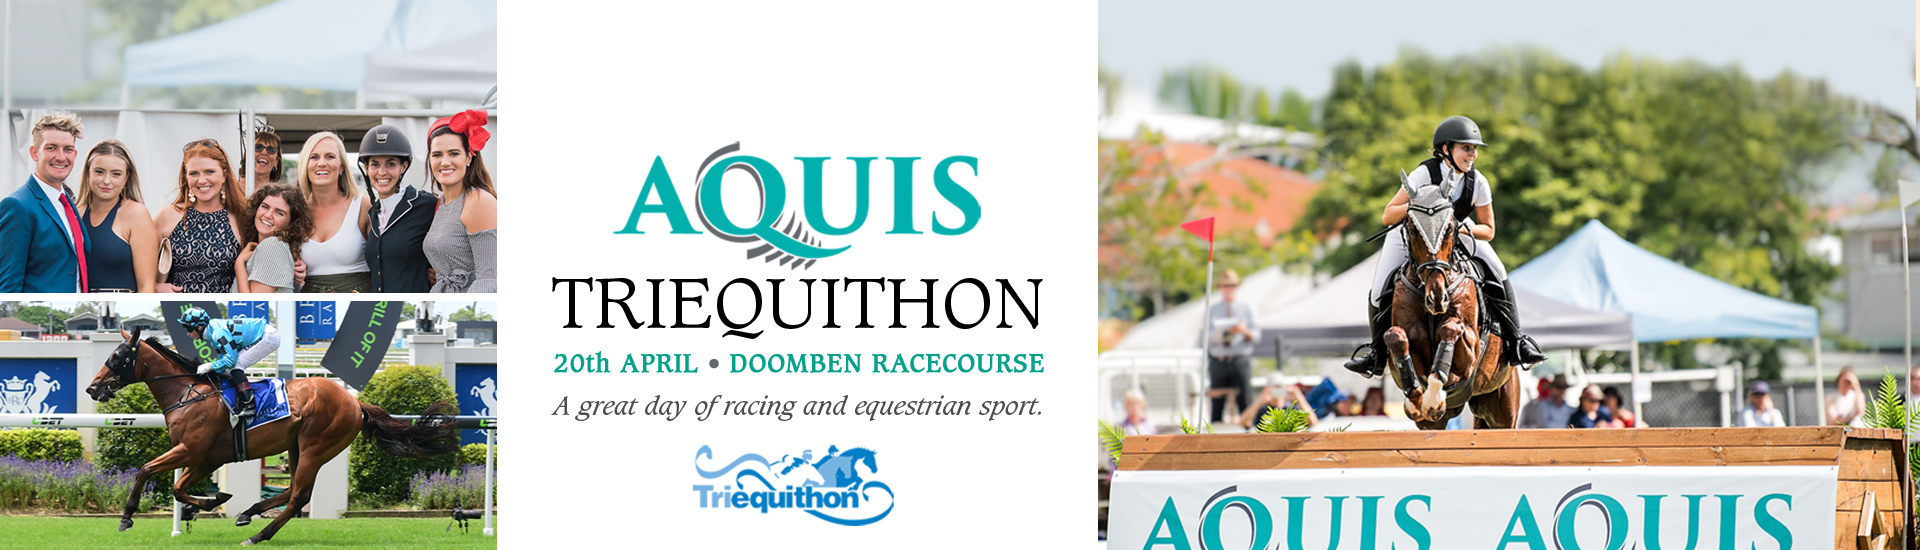 Aquis_Triequithon_Page Banner